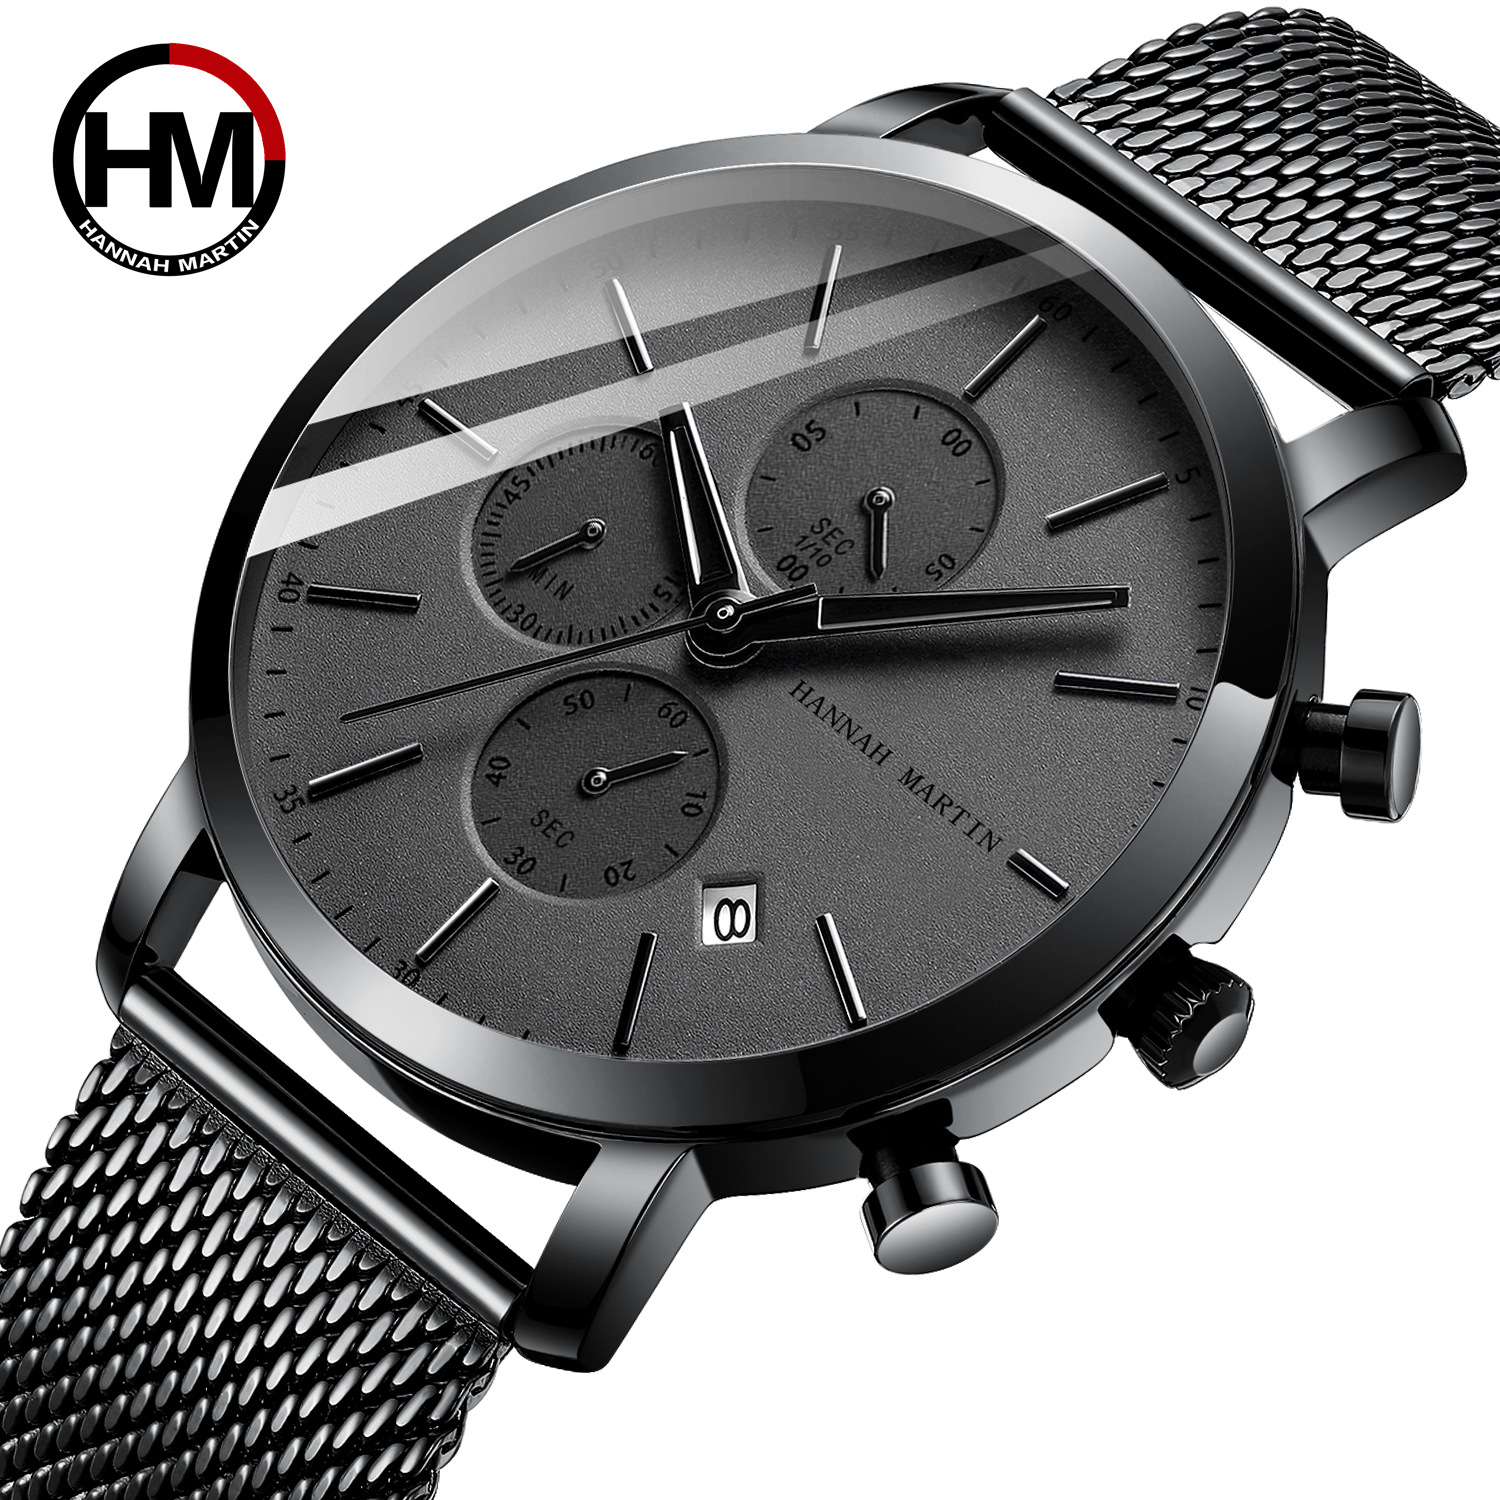 Hannah Martin 2020 Black Stainless Steel Mesh Sport Watch Men Multi-function Chronograph Calendar Men's Top Brand Luxury Watches